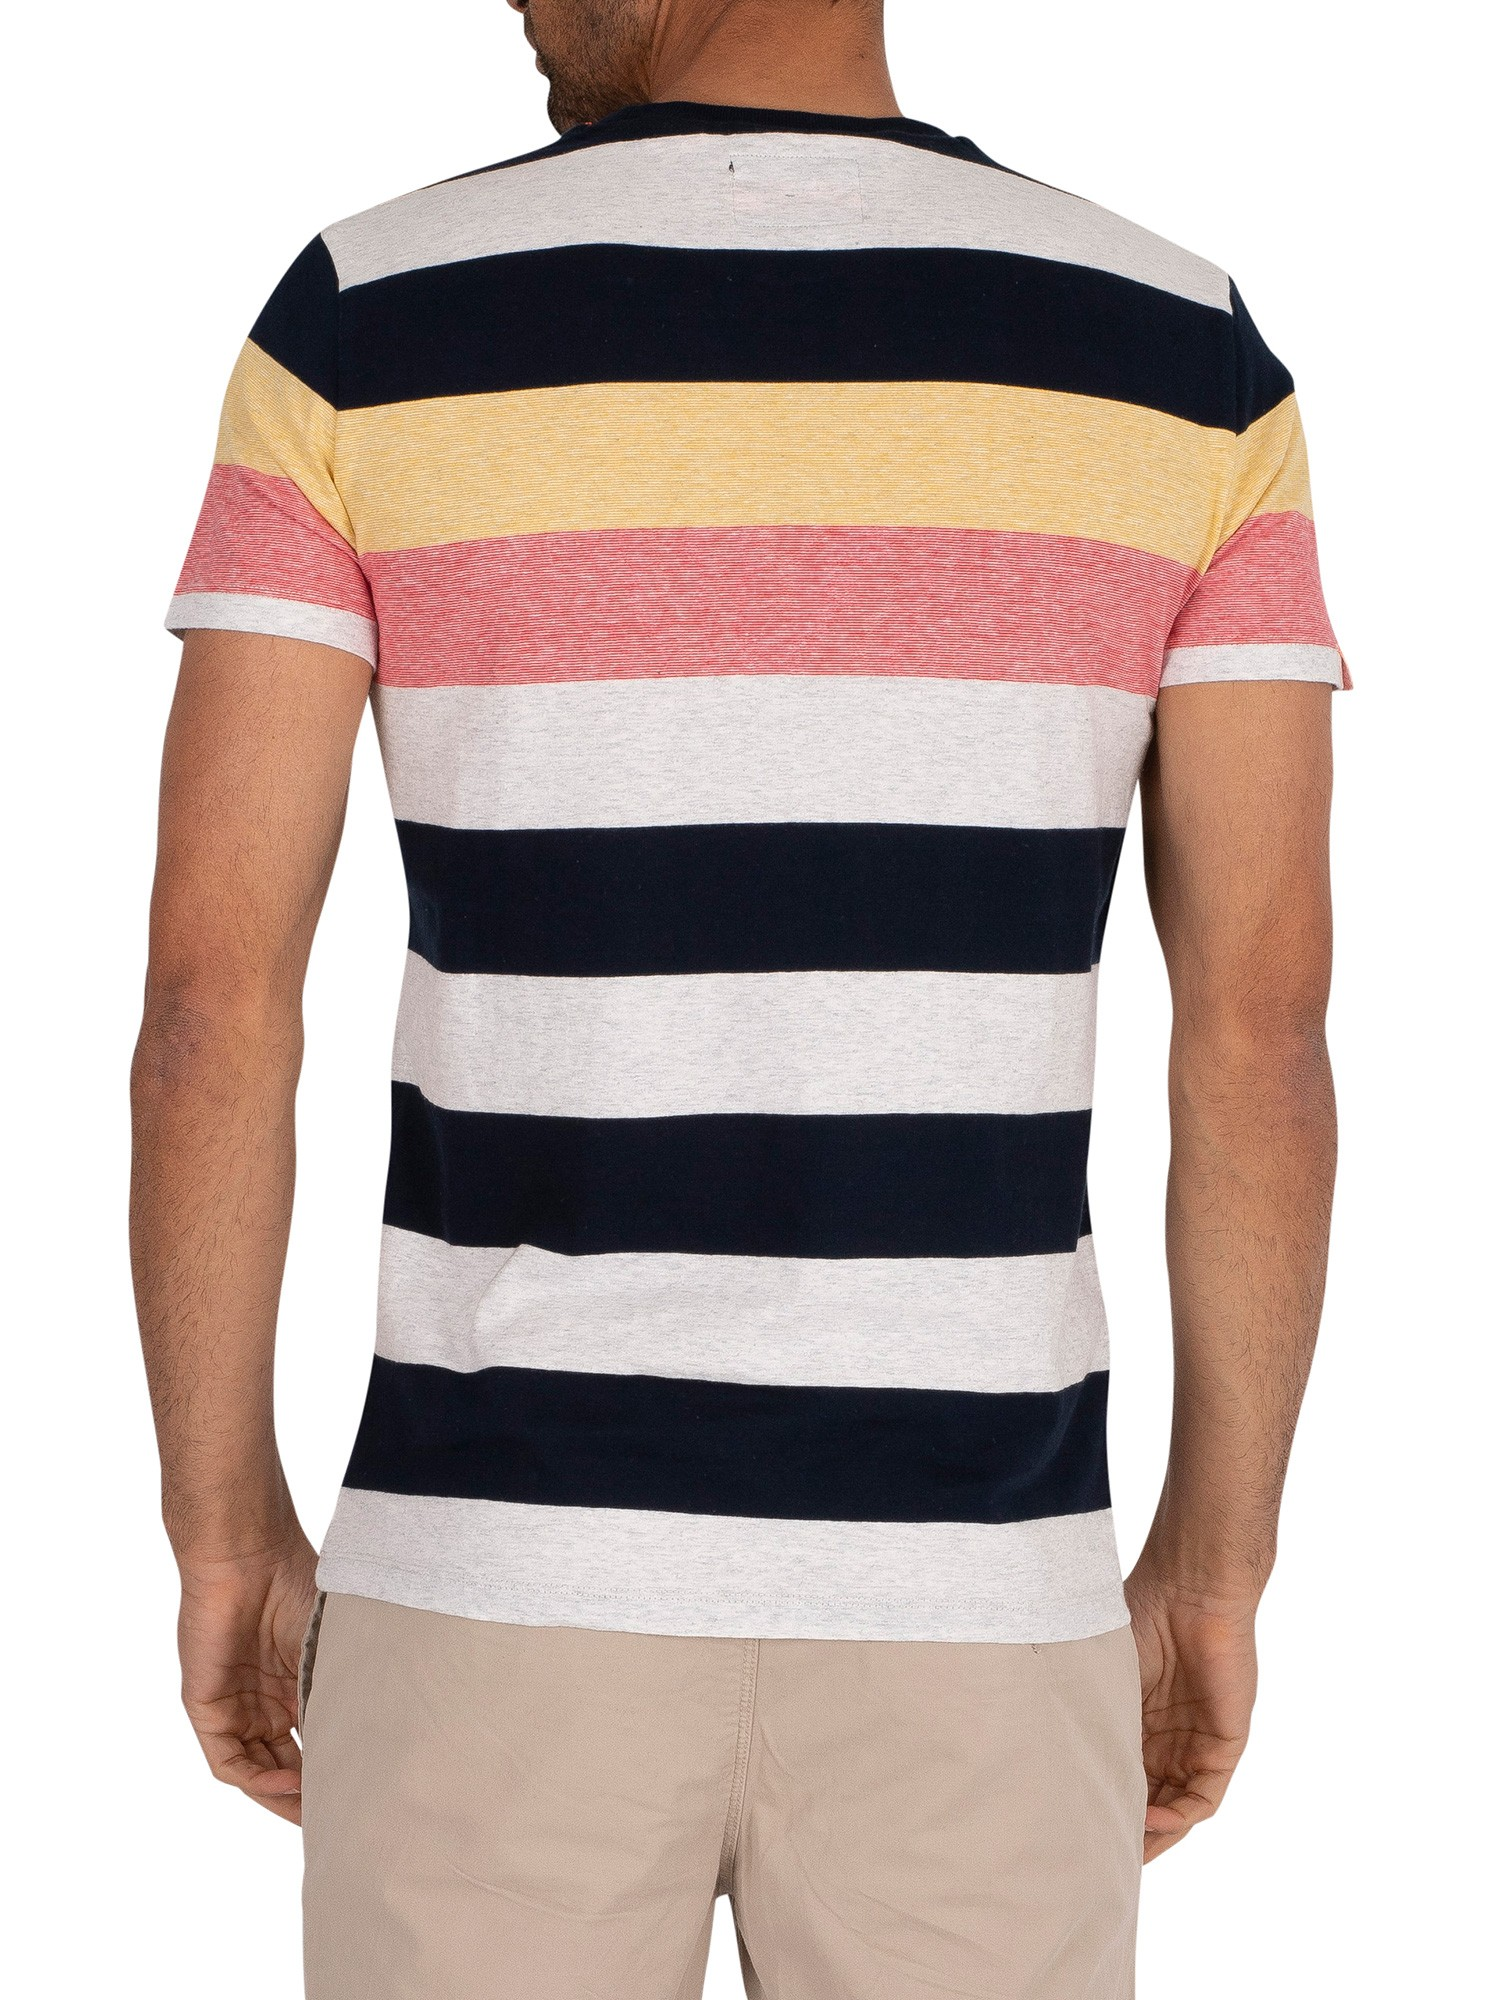 Superdry Hoop Stripe T-Shirt - Eclipse Navy